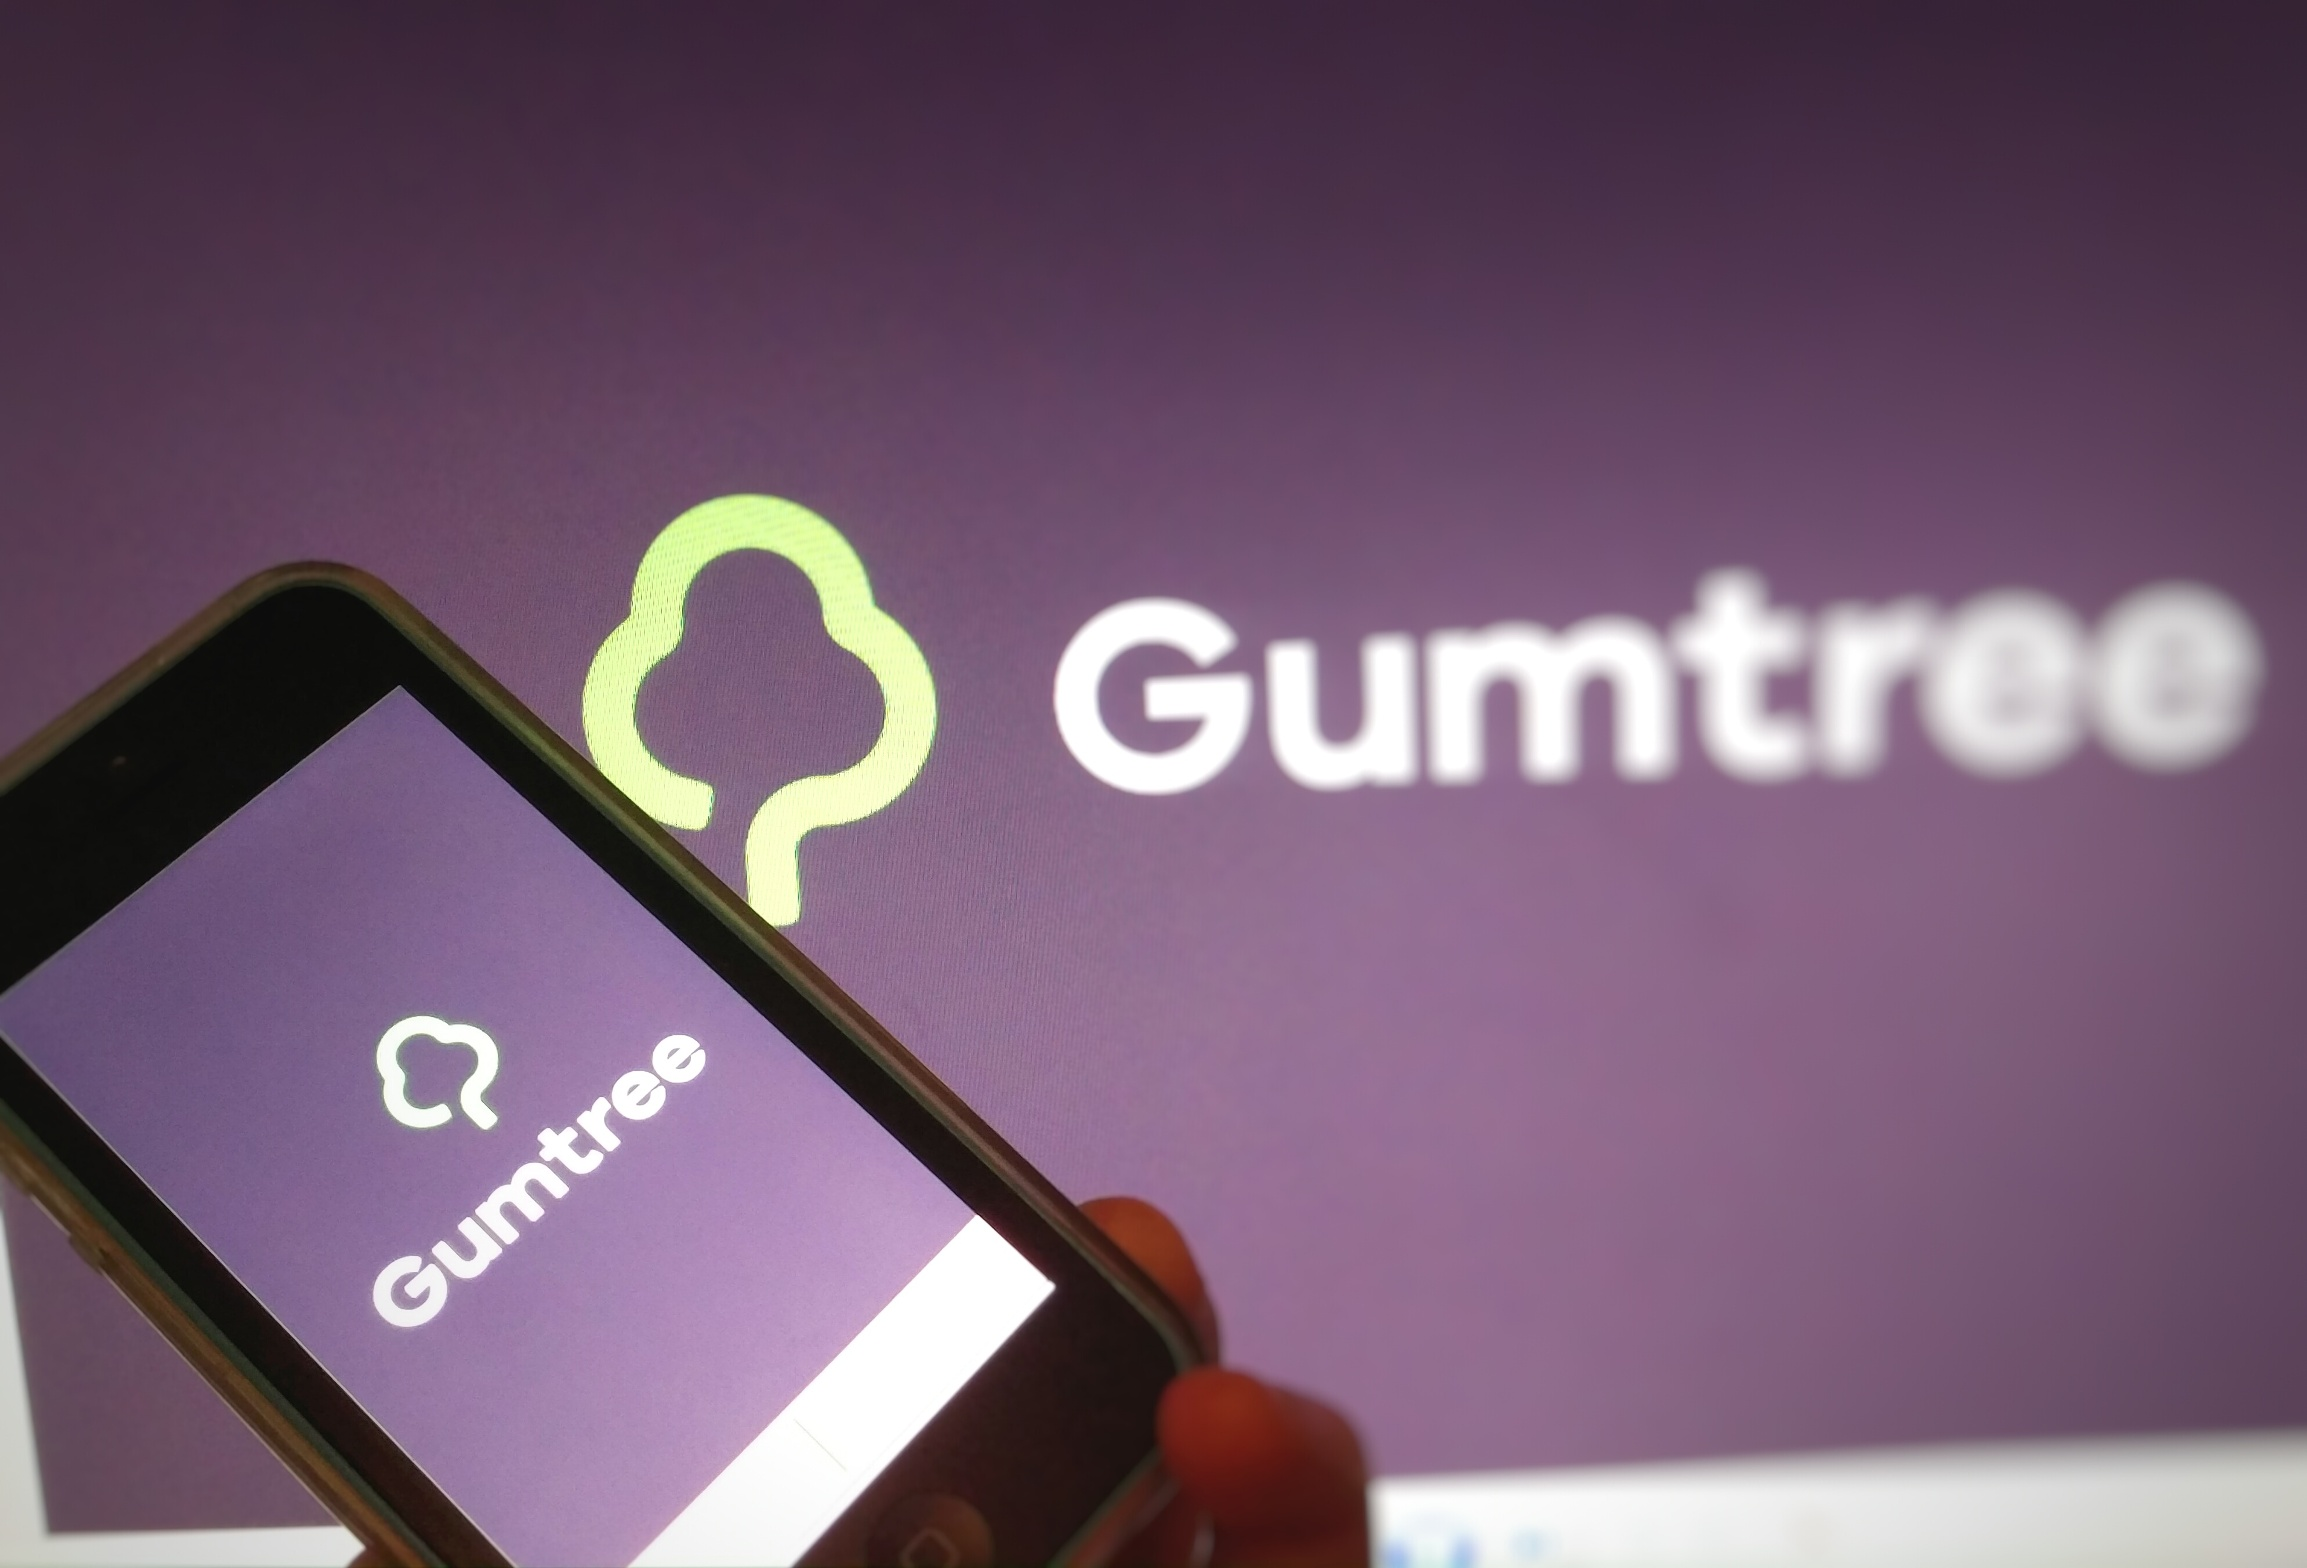 Gumtree, Britain's eBay-owned version of Craigslist, is going on the